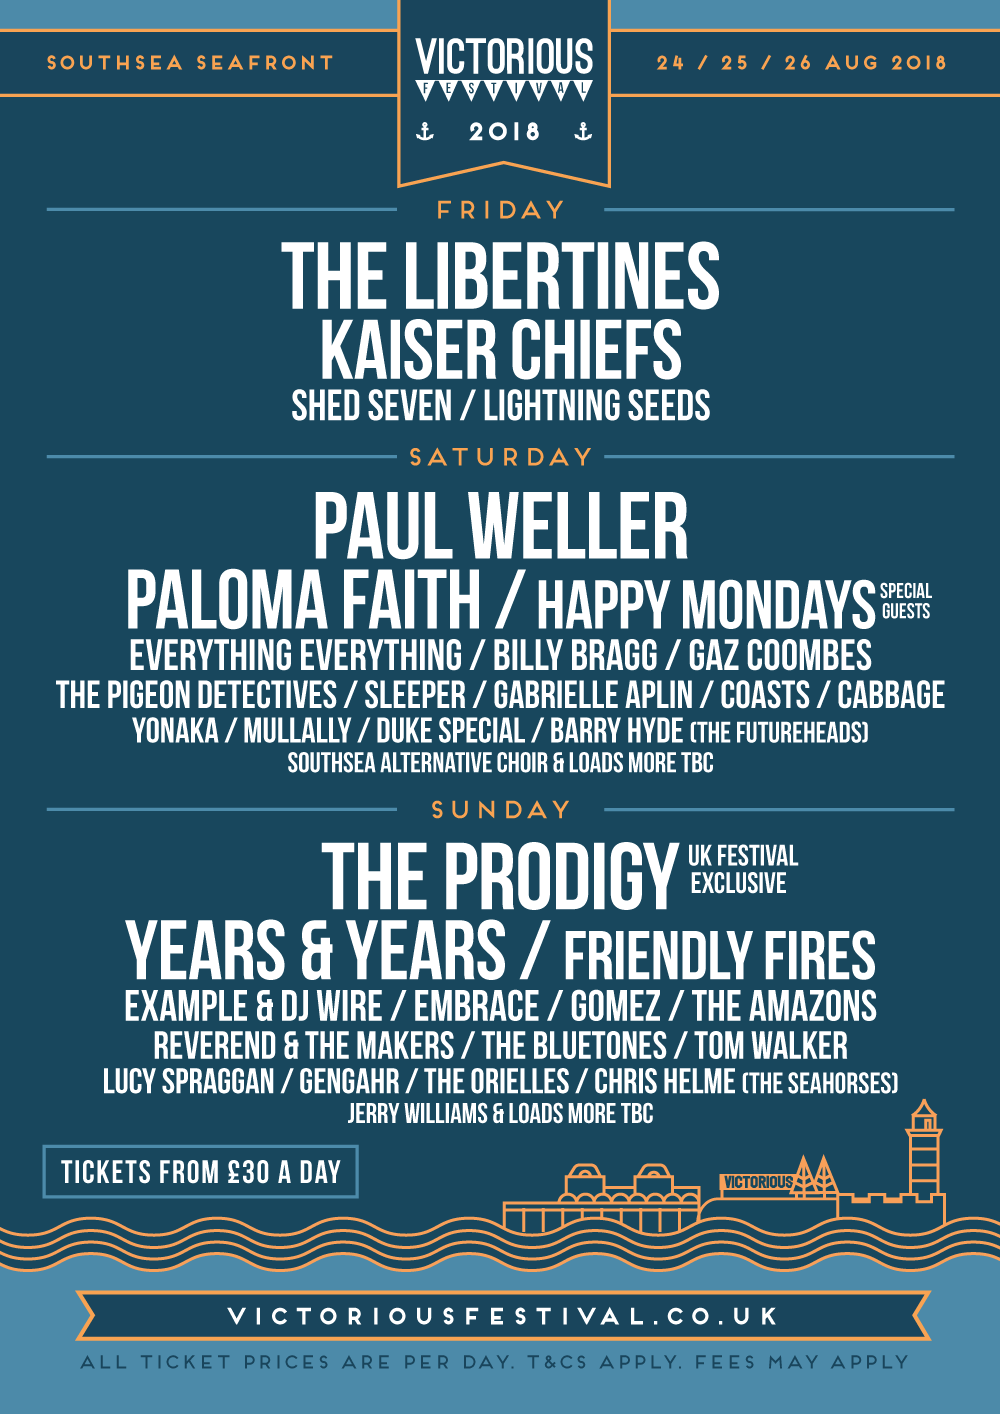 Victorious Festival 2018 poster